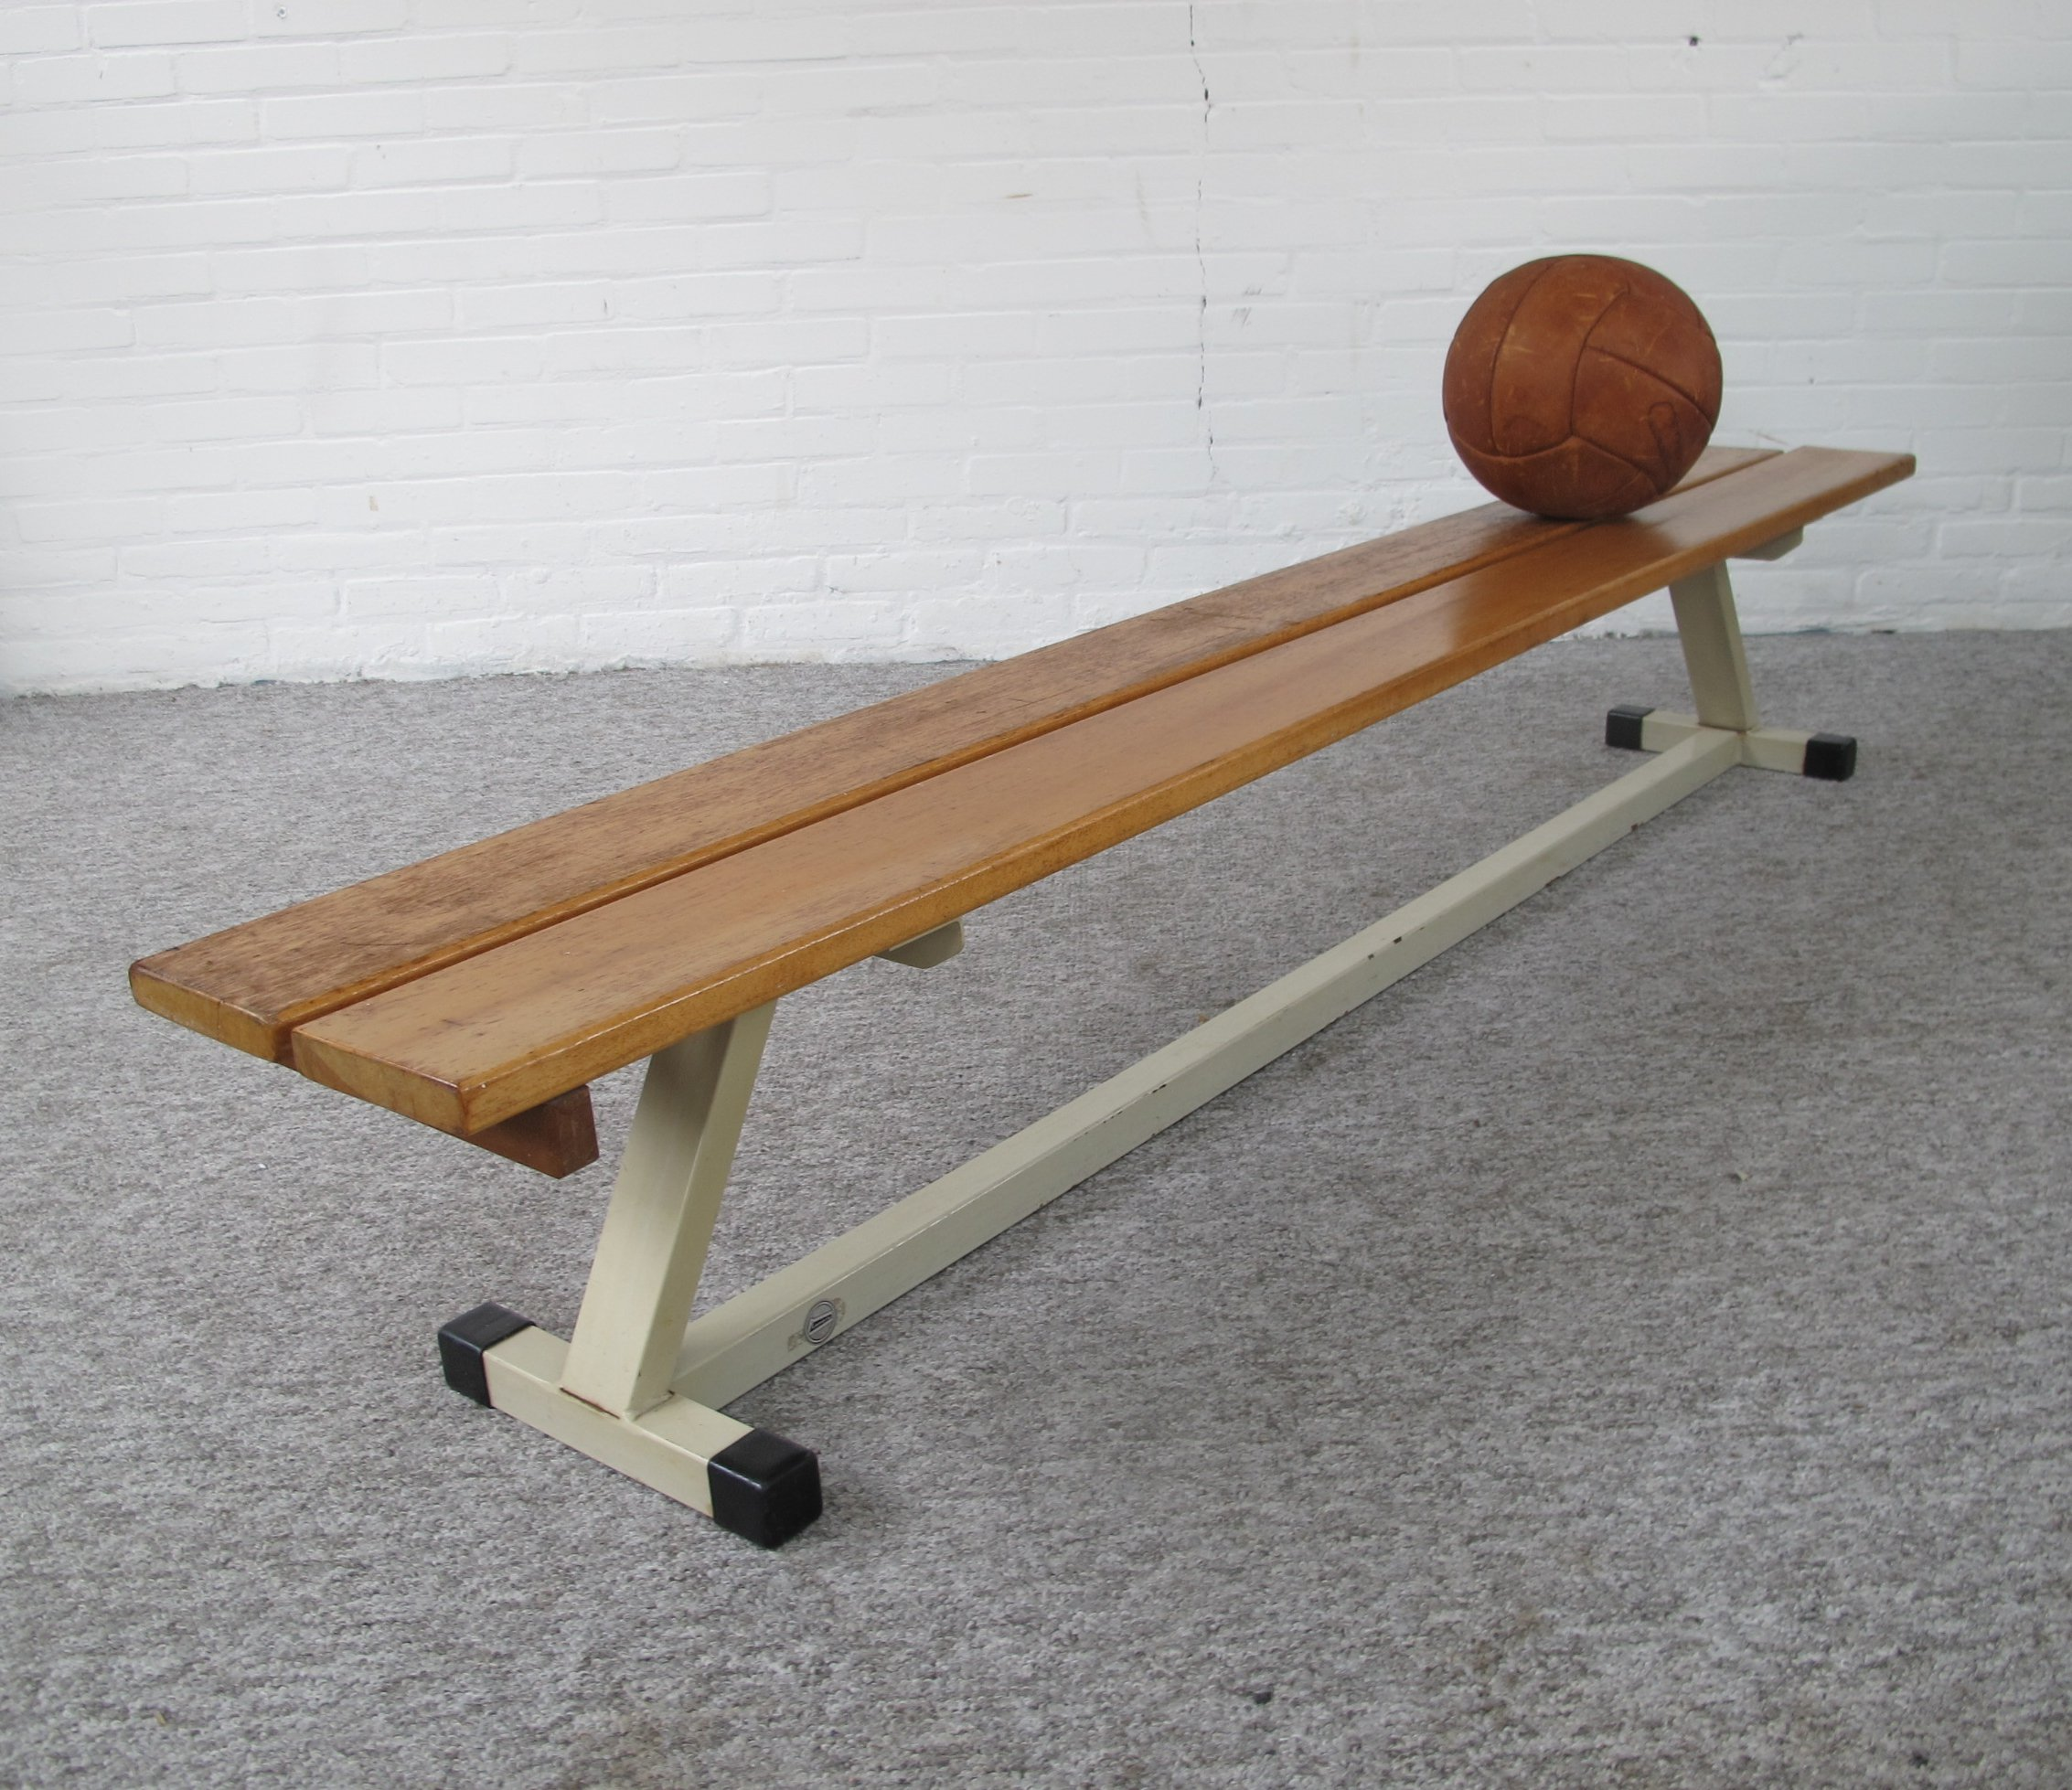 Tremendous School Bench Made Of Metal With Wooden Slats 1960S Beatyapartments Chair Design Images Beatyapartmentscom